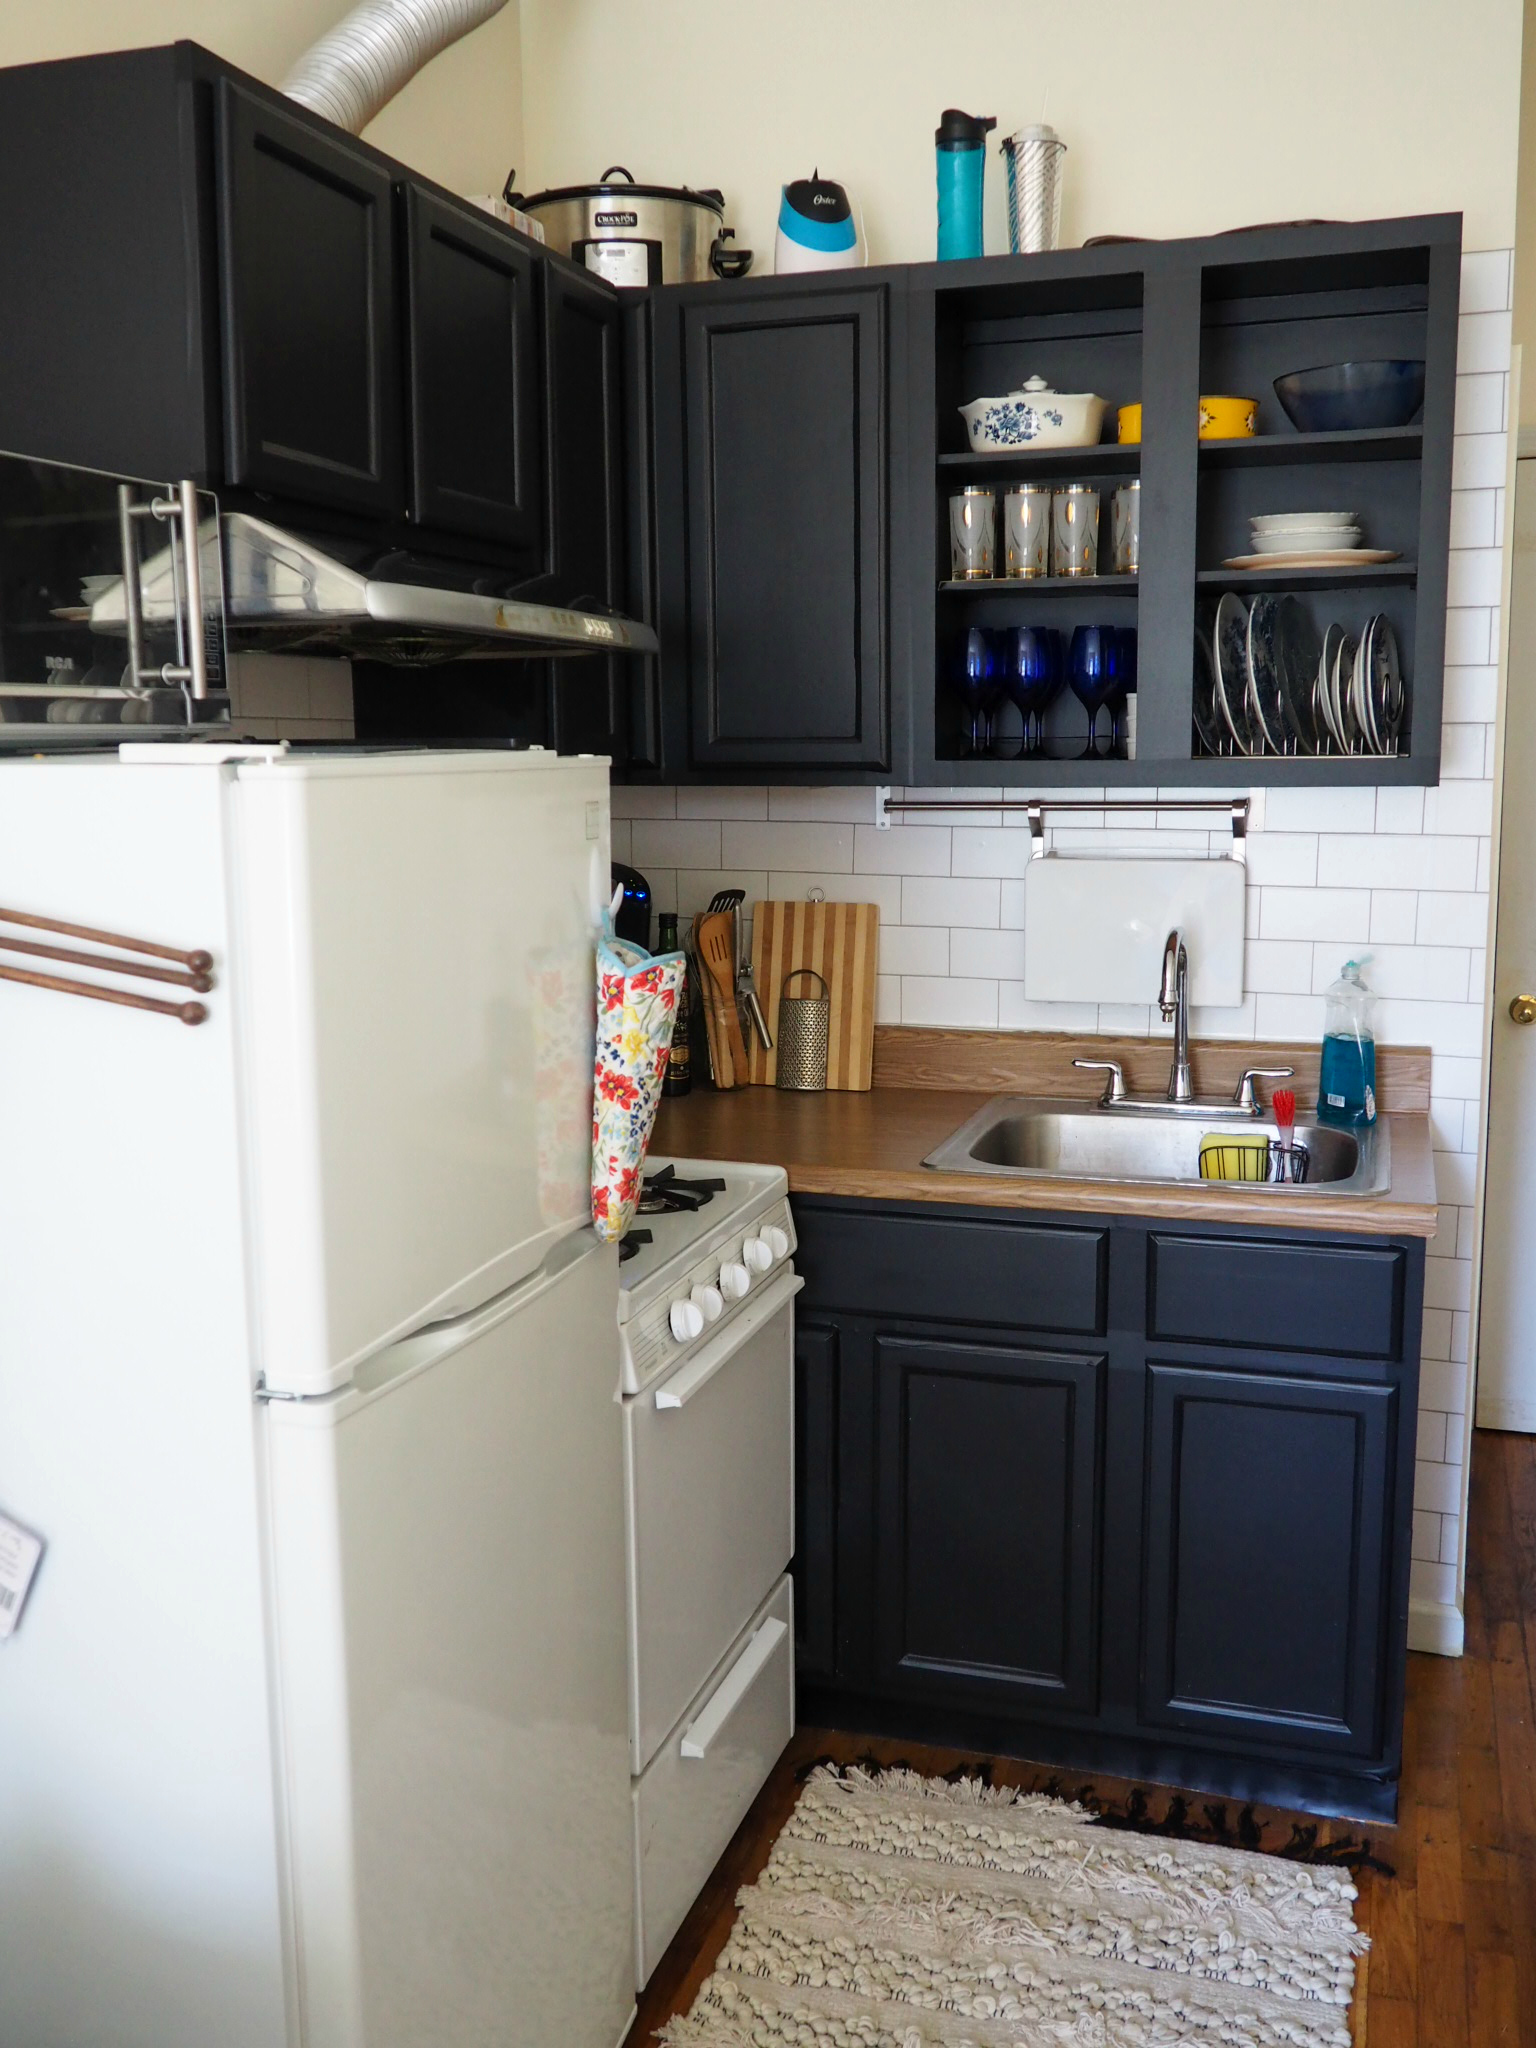 DIY Contact Paper Kitchen Update Part 1: Cabinets - Roaming Home